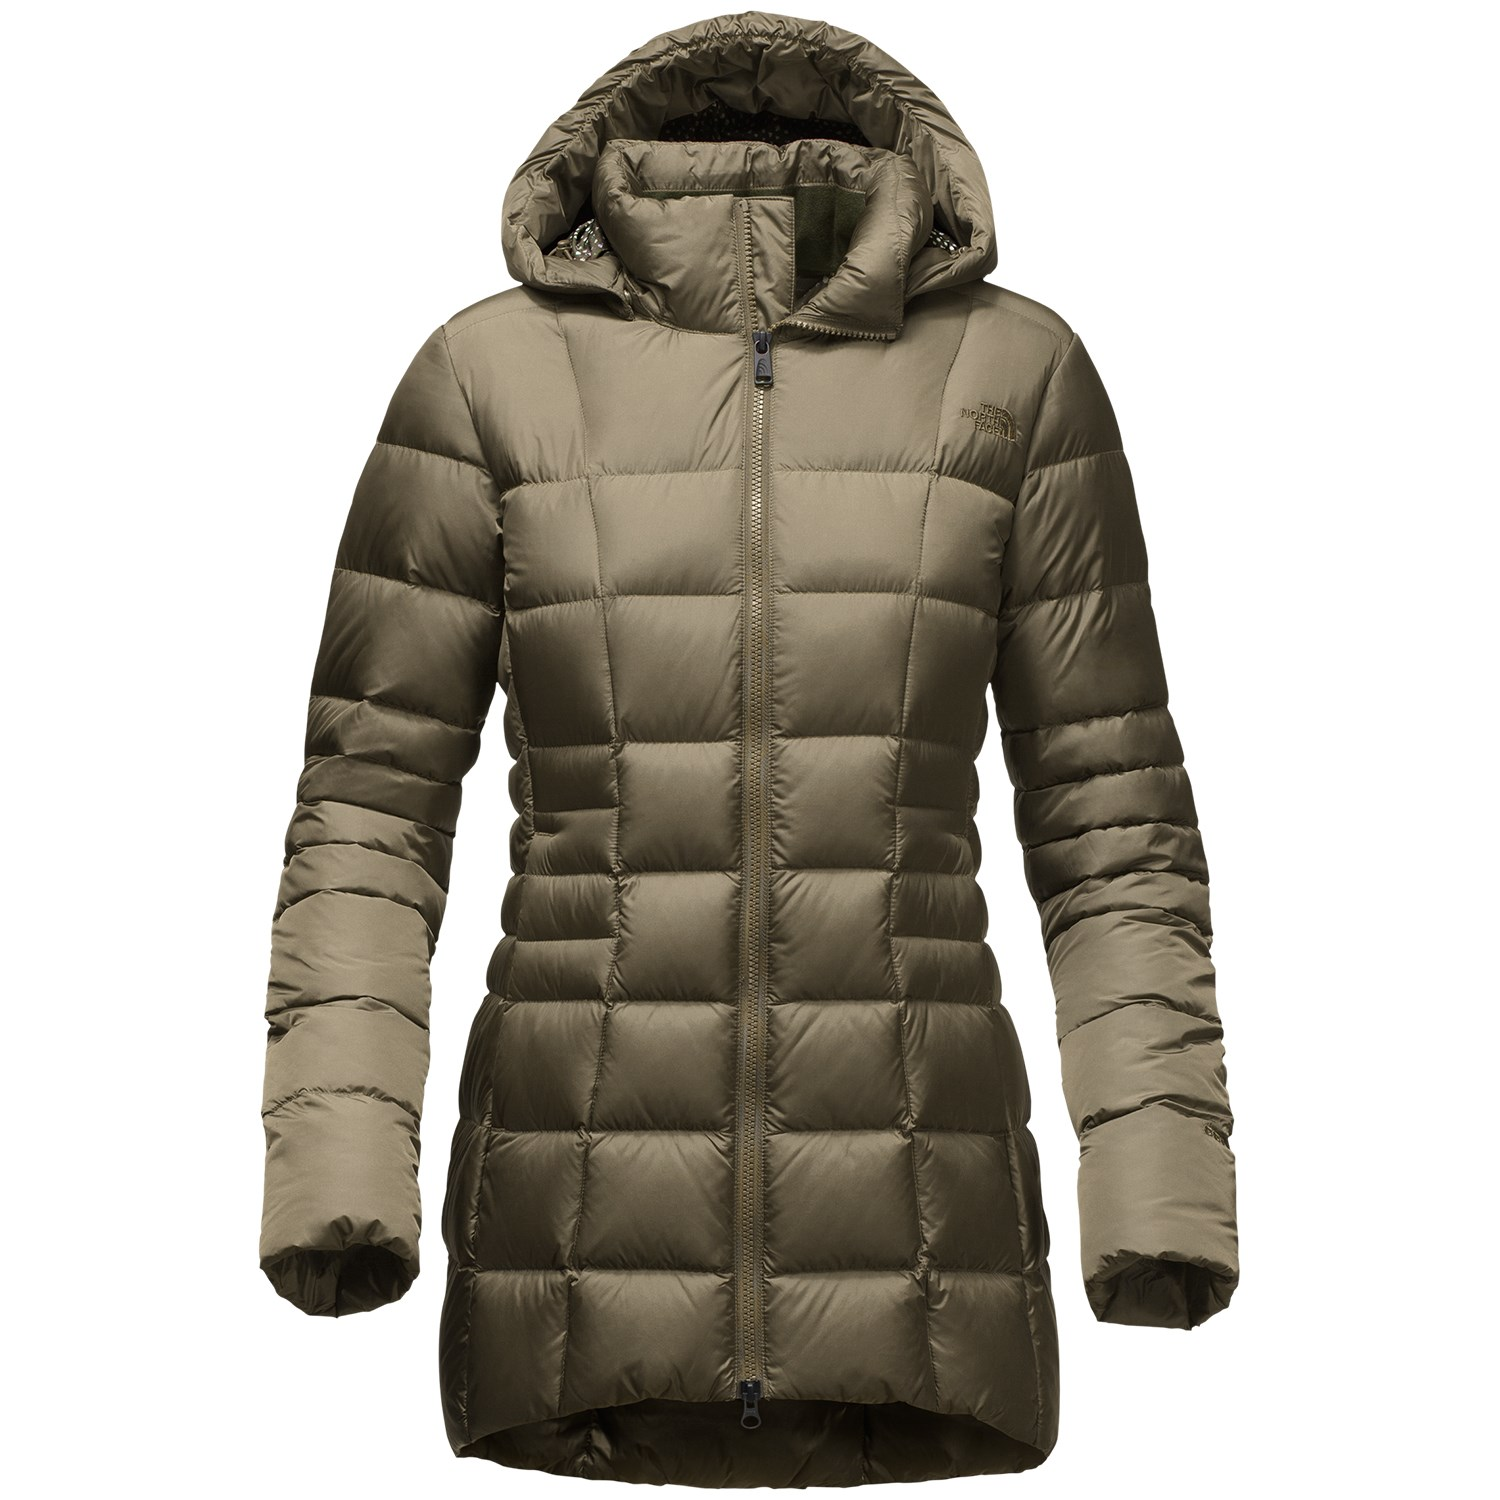 3a7d649de The North Face Transit II Jacket - Women's